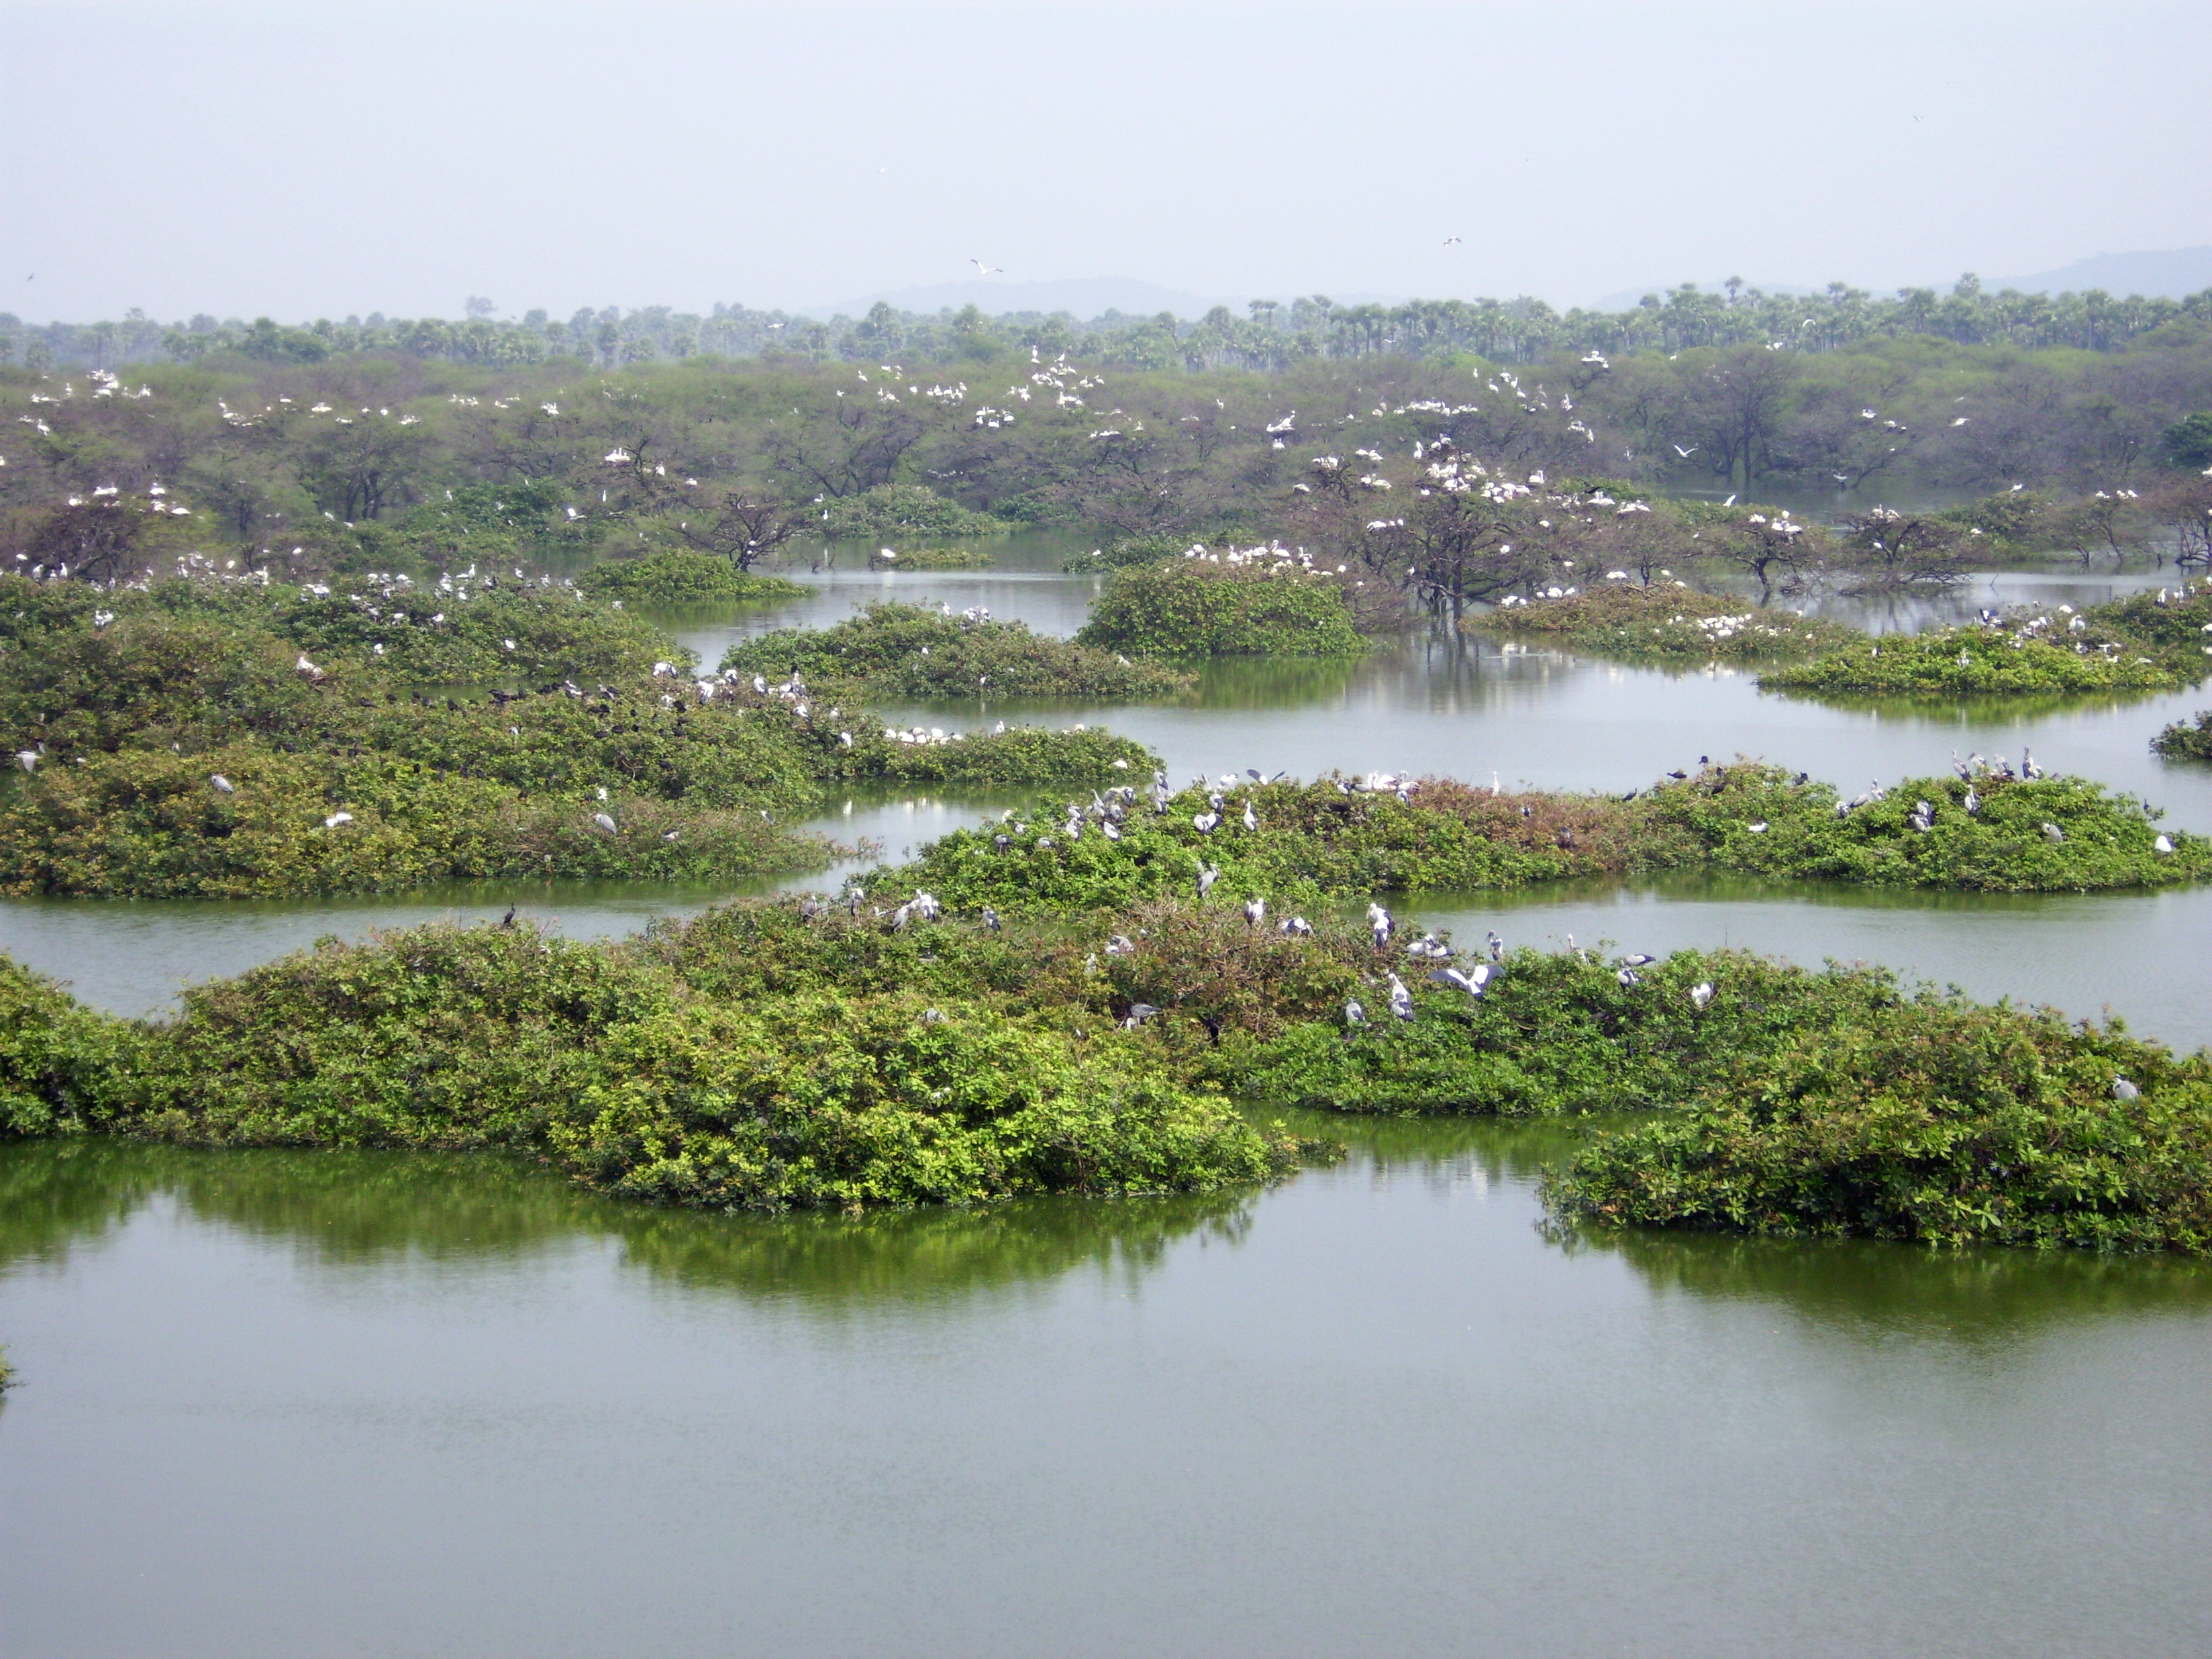 essay on vedanthangal bird sanctuary